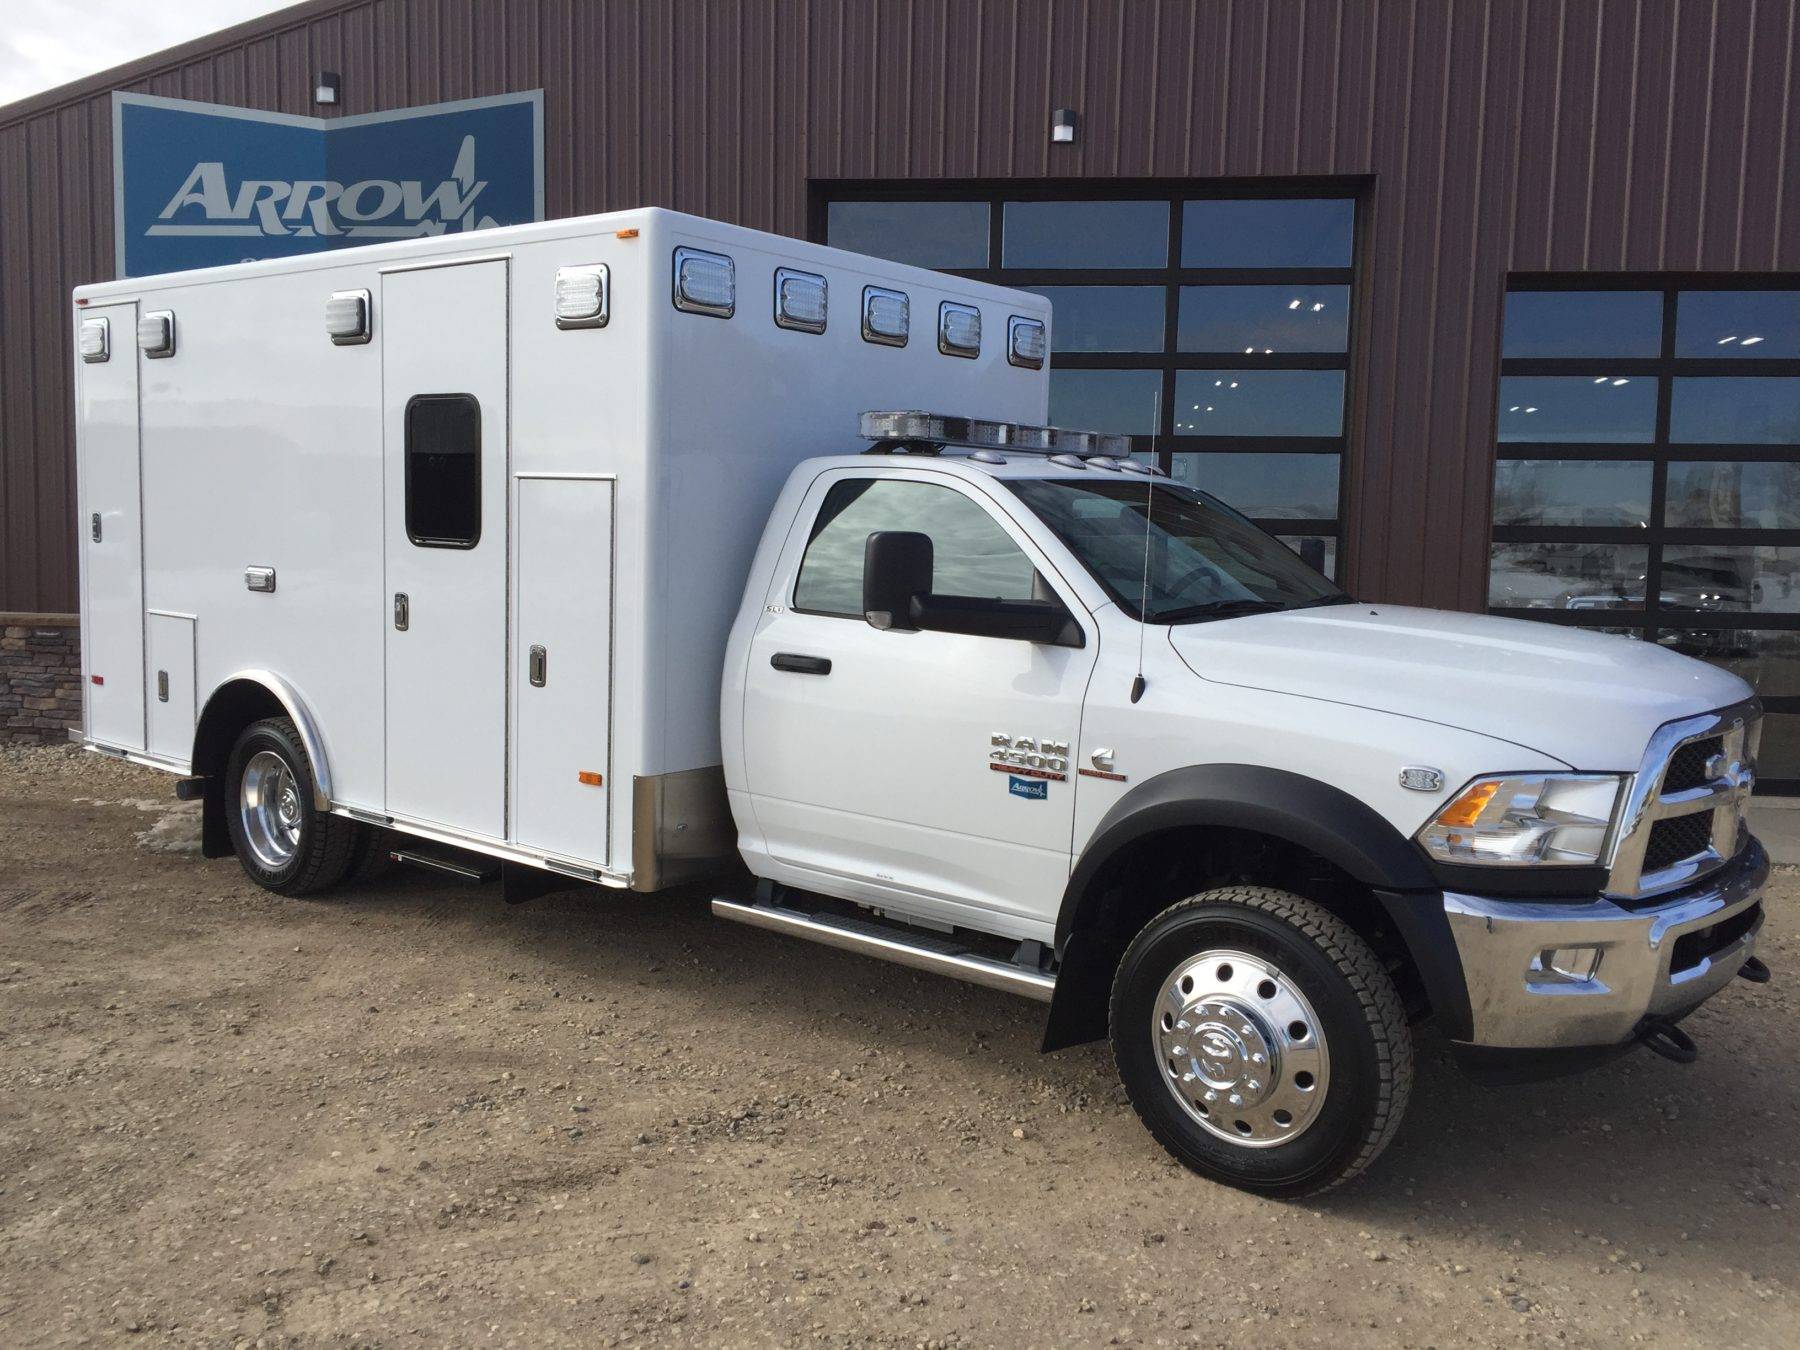 2017 Ram 4500 4x4 Heavy Duty Ambulance For Sale – Picture 1